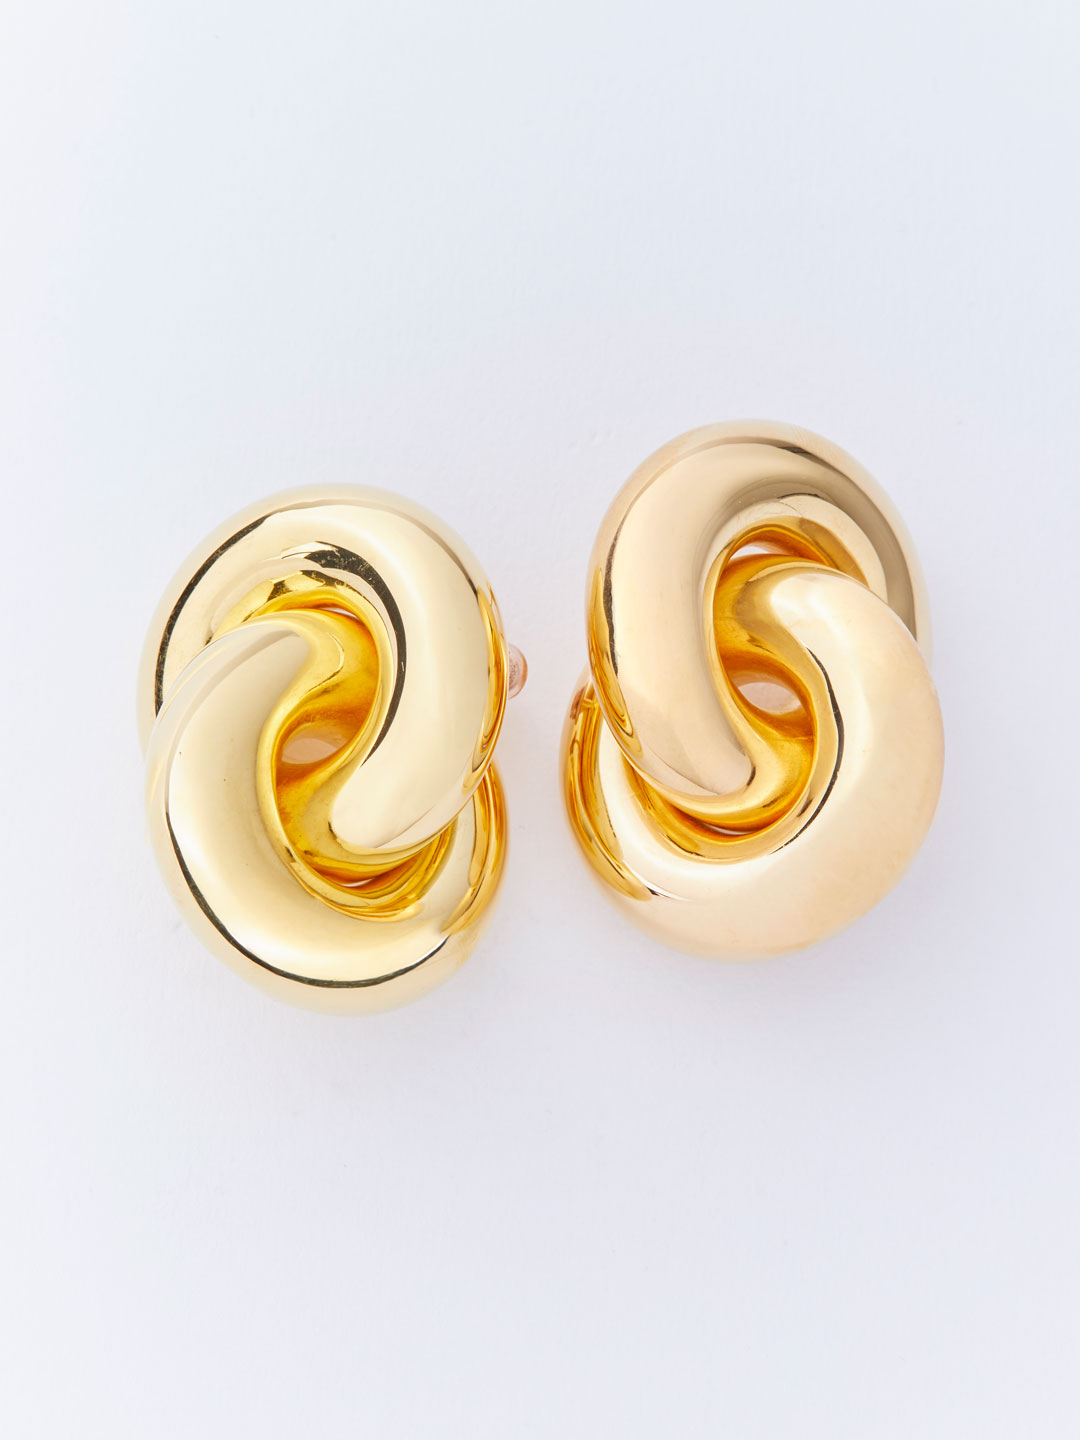 Cumulus Pierced Earrings - Gold